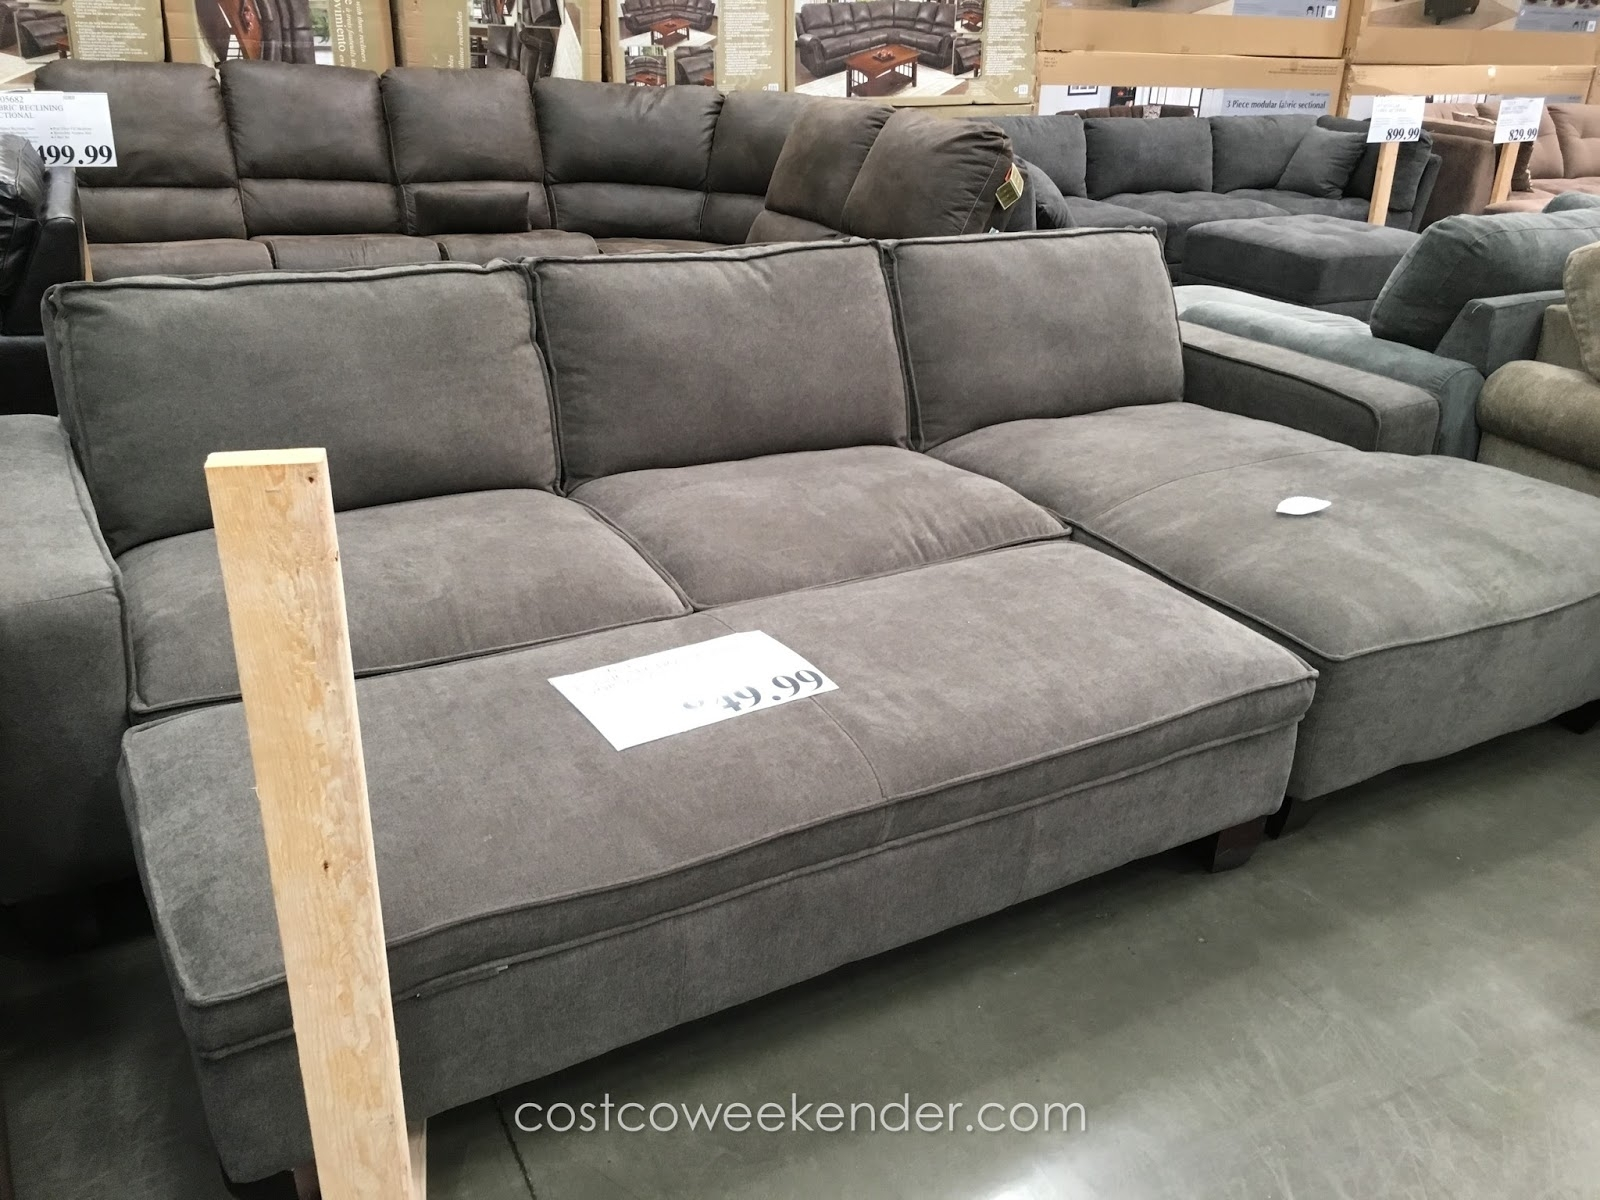 2018 popular couches with large ottoman. Black Bedroom Furniture Sets. Home Design Ideas